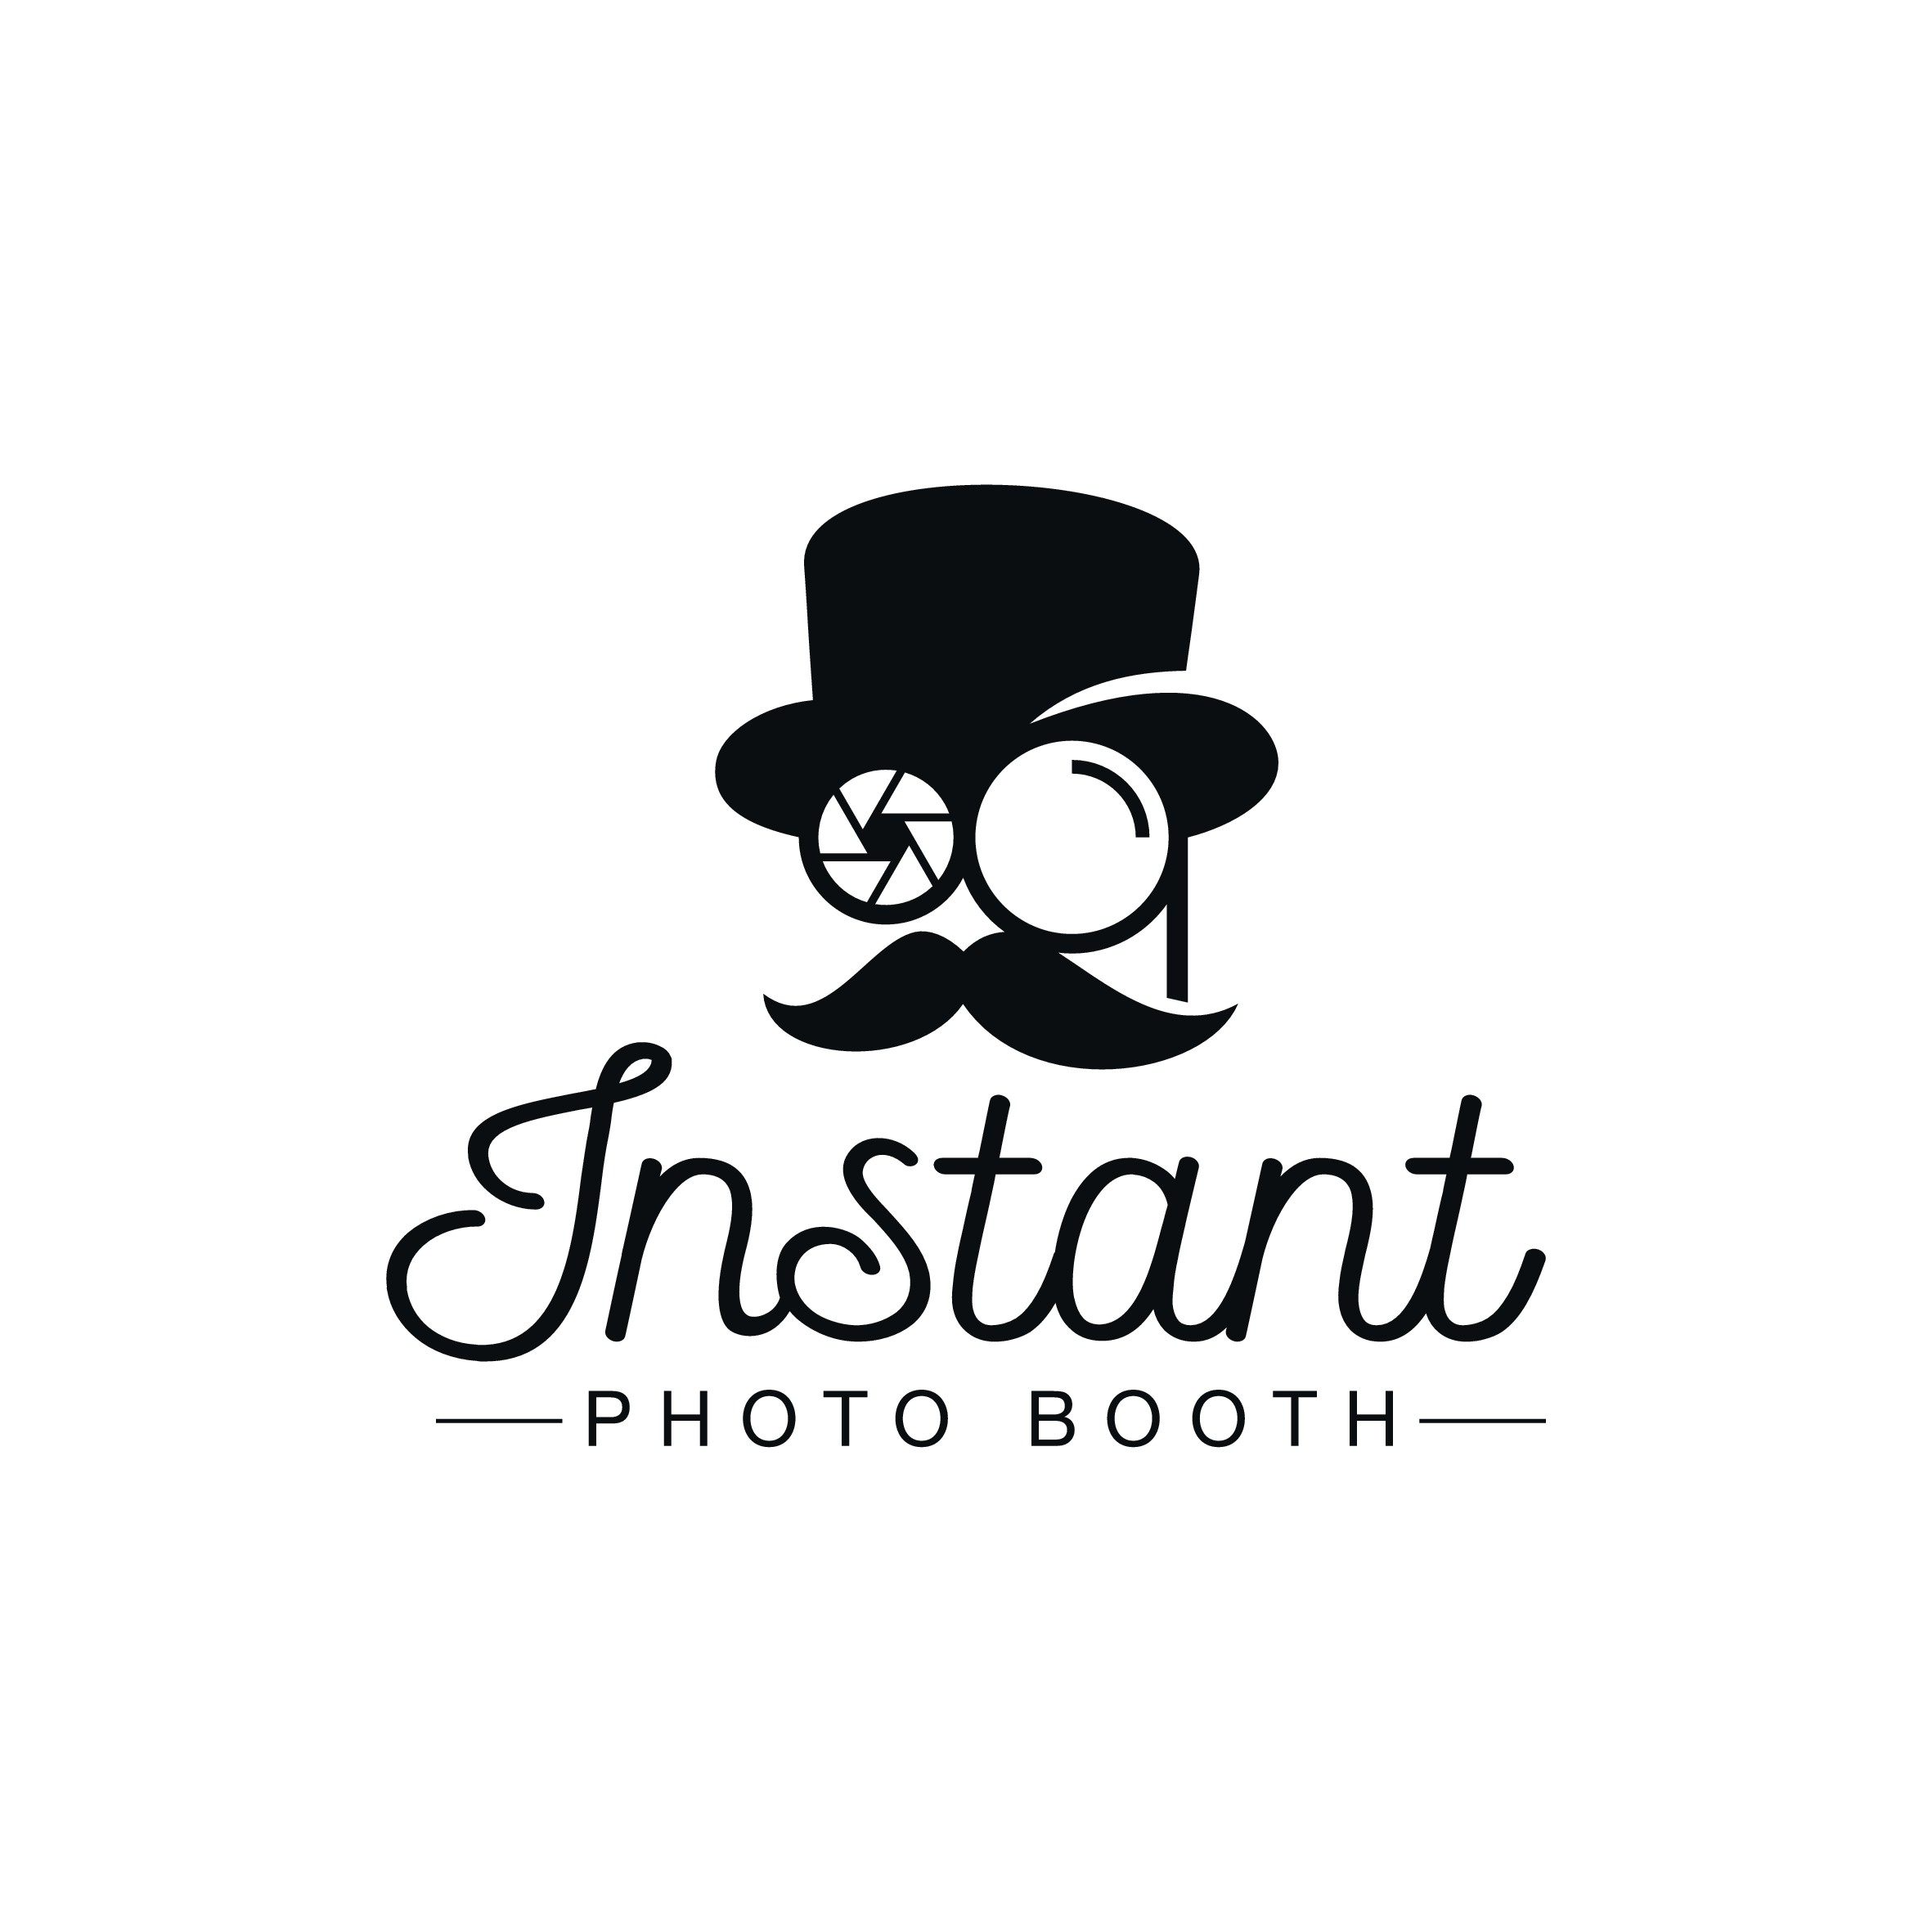 Redeisgn the Instant Photo Man logo for the Instant Photo Booth app